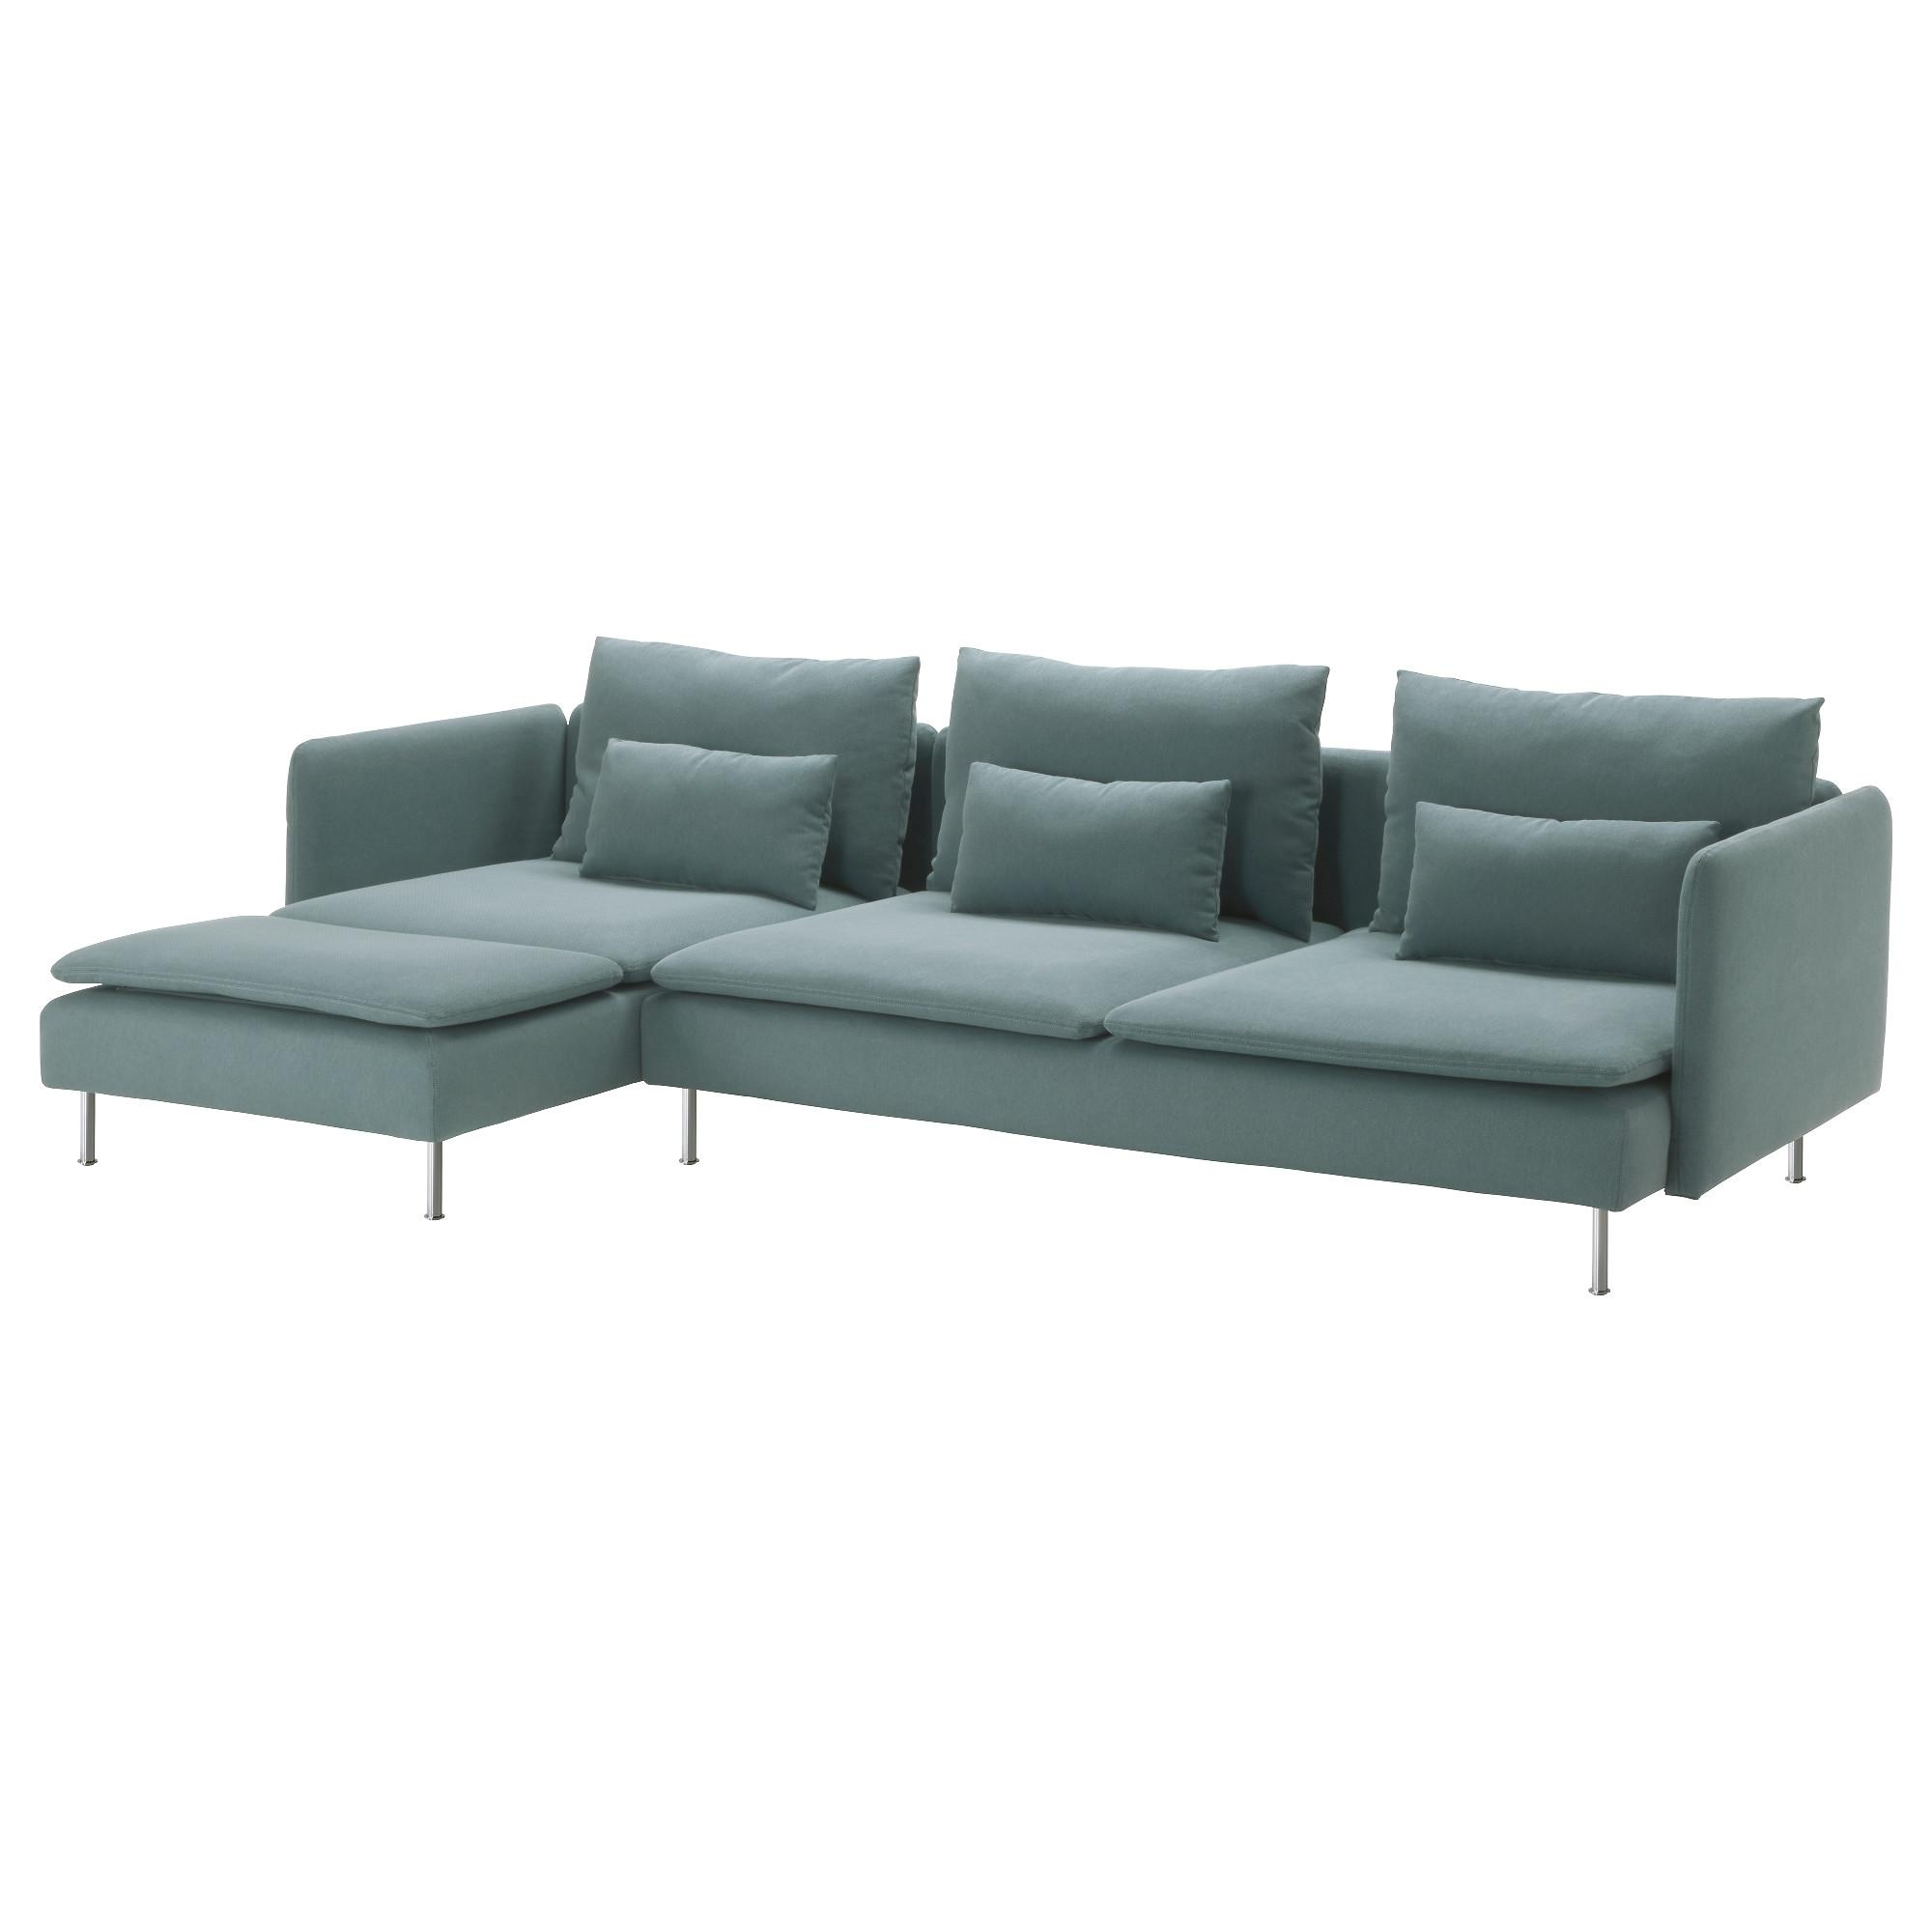 Sectional Sofas & Couches – Ikea Inside Ikea Sectional Sofa Sleeper (View 8 of 20)